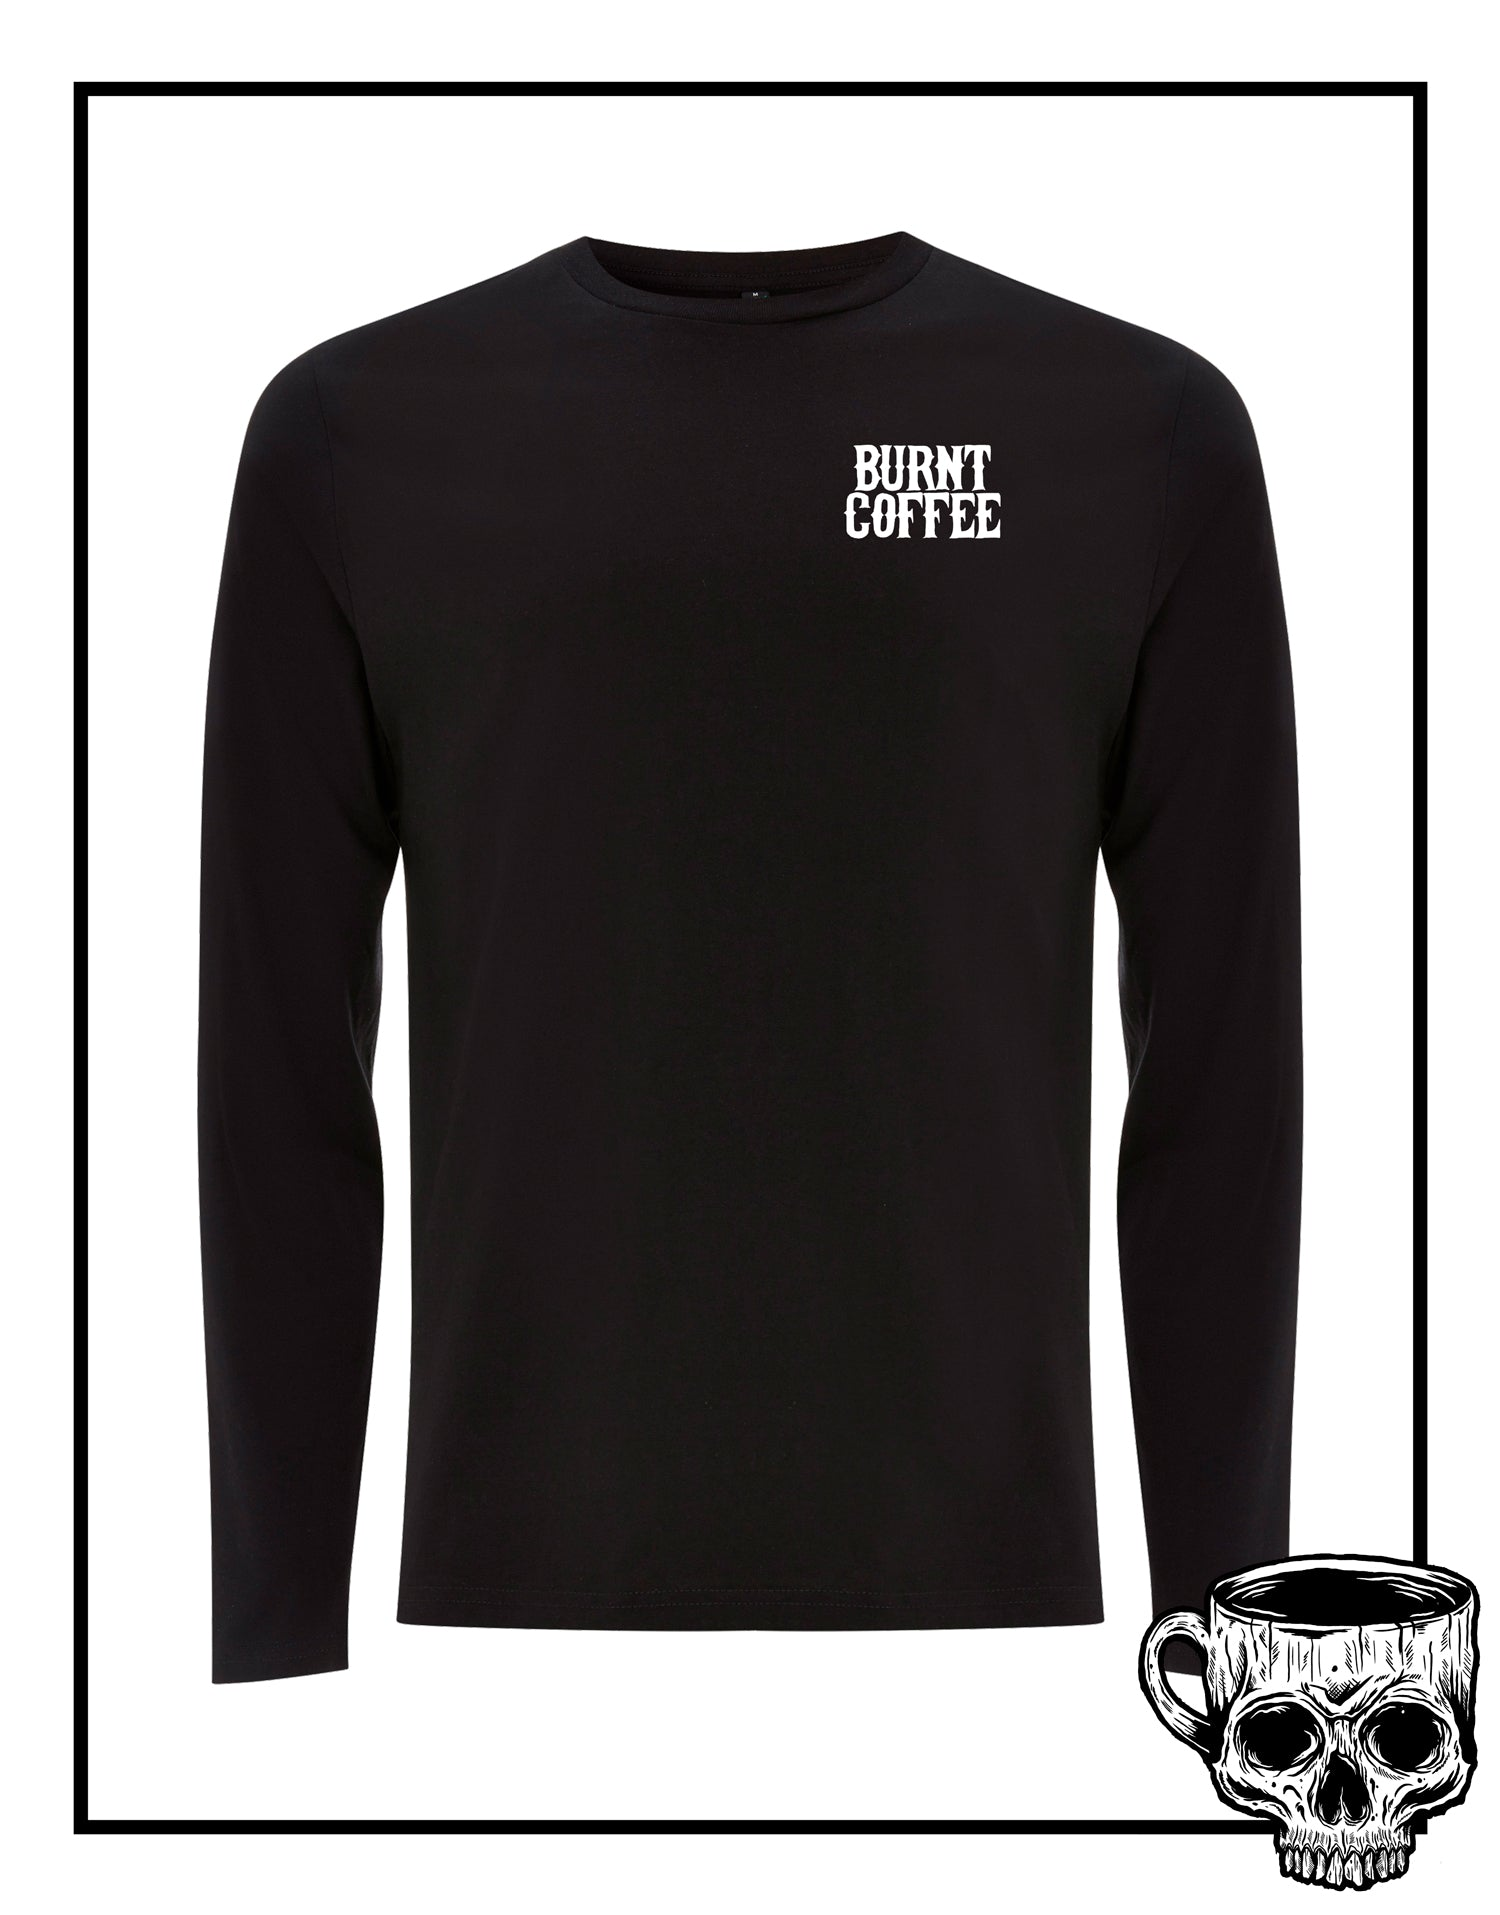 Bright Nights Long Sleeve T-Shirt - Burnt Coffee Clothing